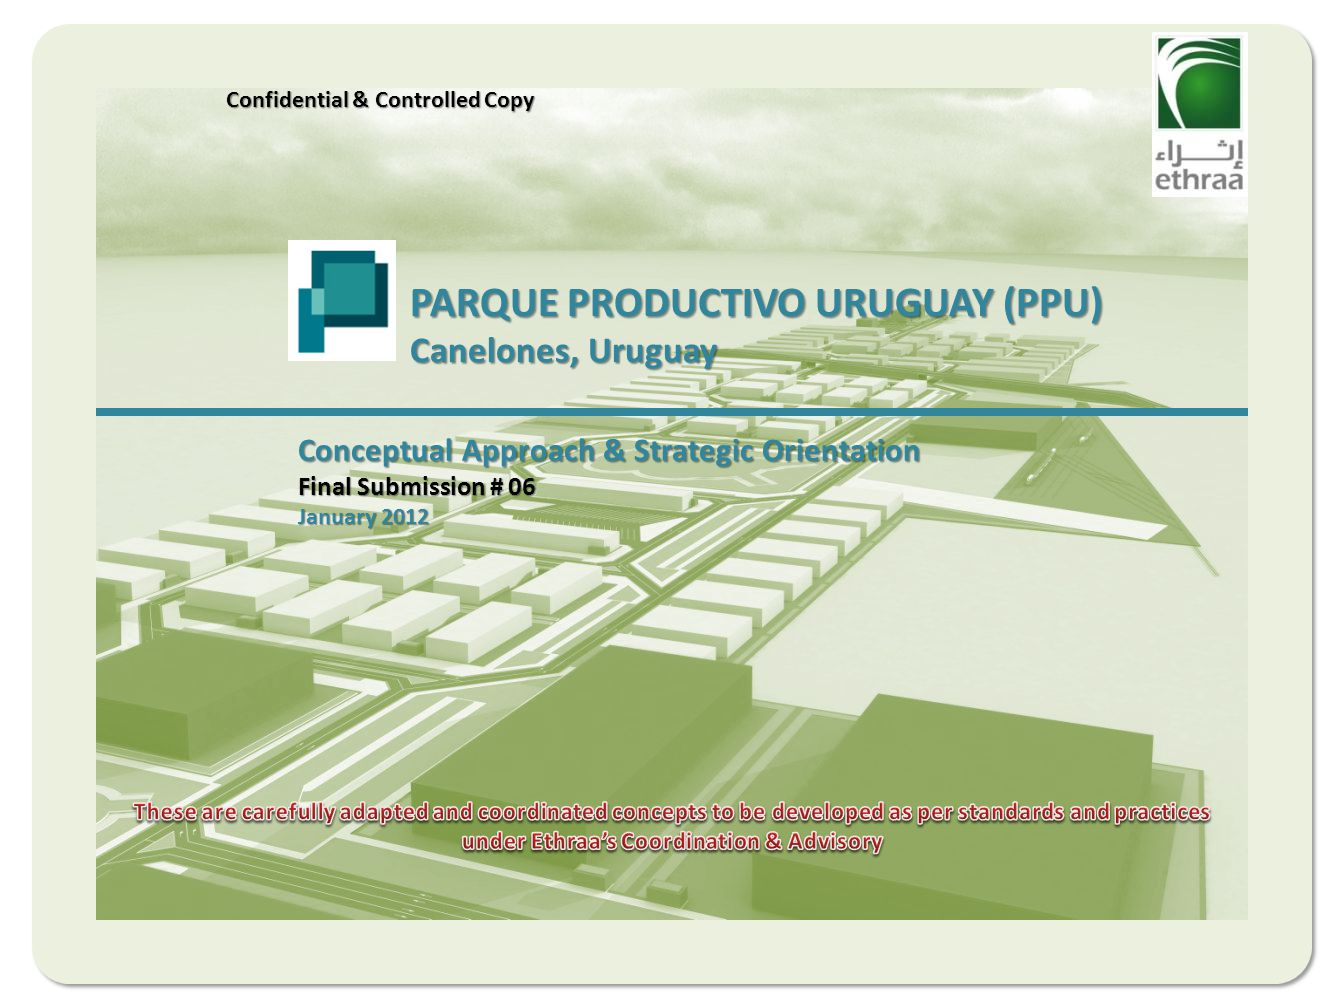 PARQUE PRODUCTIVO URUGUAY (PPU) Canelones, Uruguay Conceptual Approach & Strategic Orientation Final Submission # 06 January 2012 Confidential & Controlled Copy